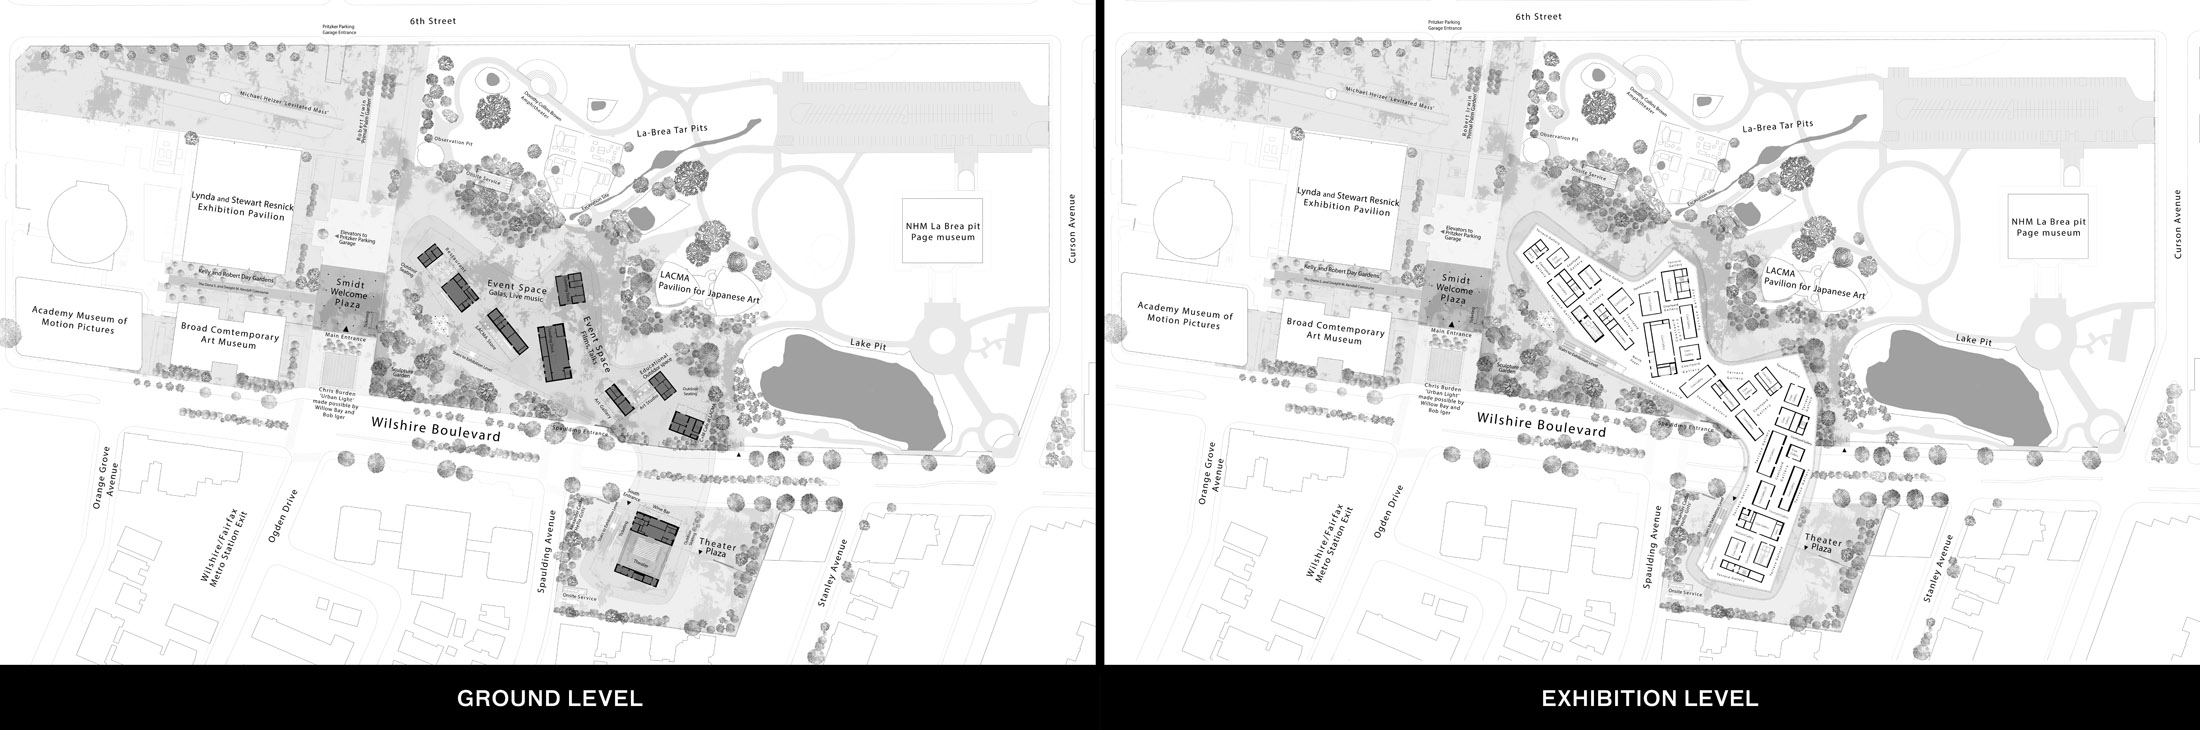 plan of contemporary museum building for the new LACMA